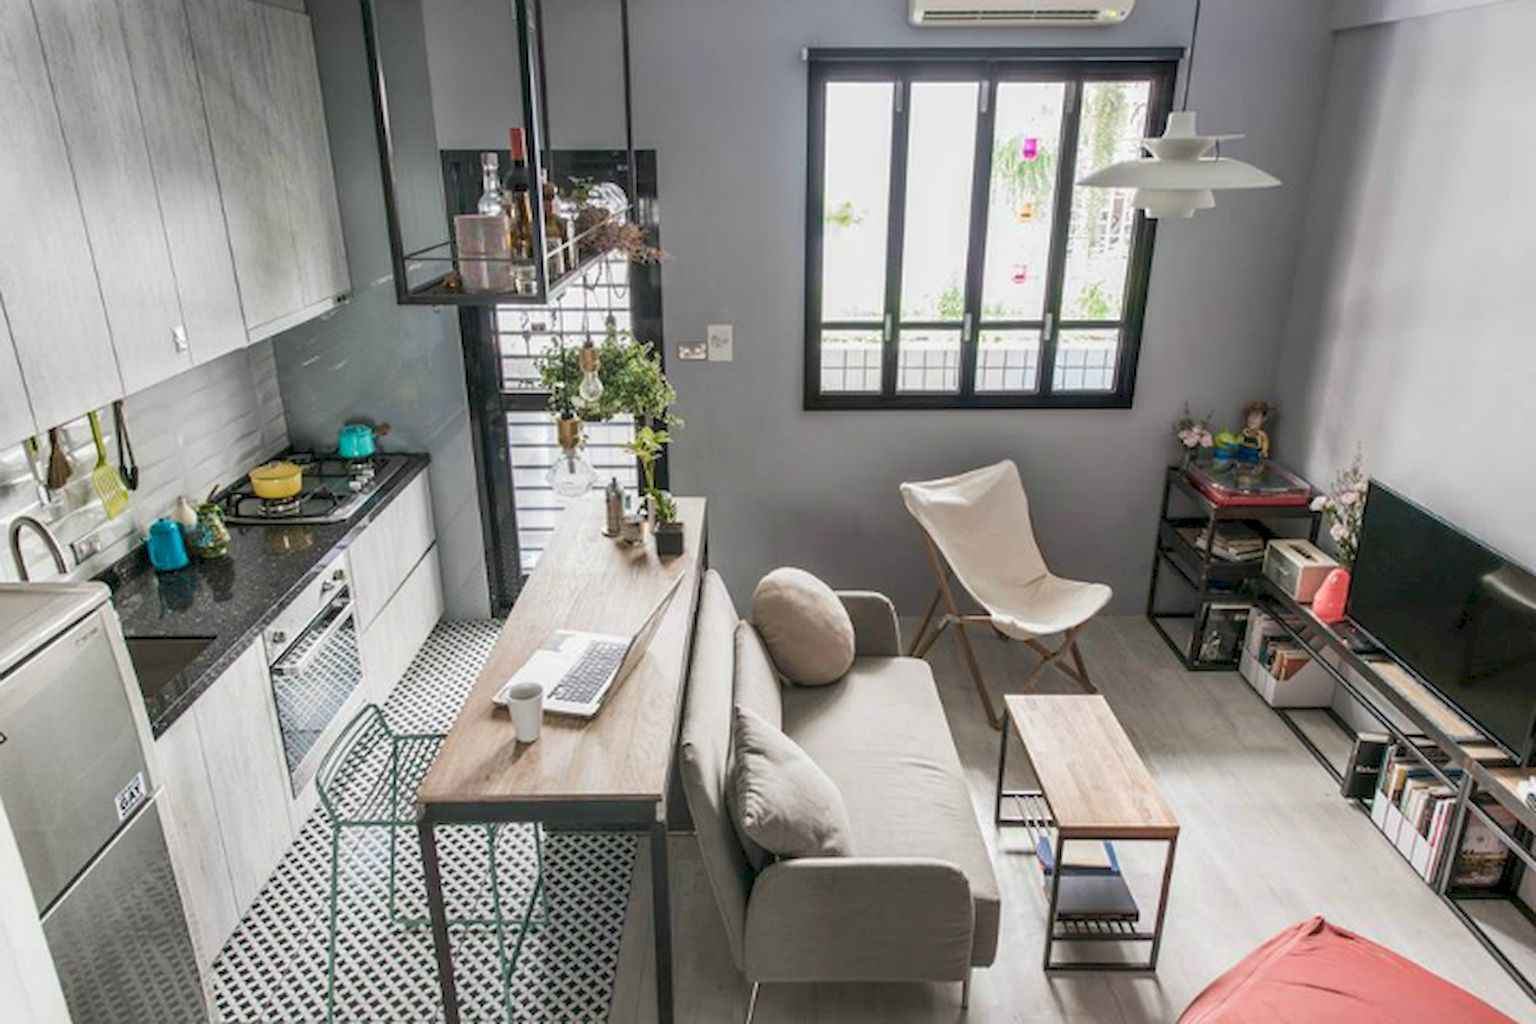 Cool small apartment decorating ideas on a budget (60)